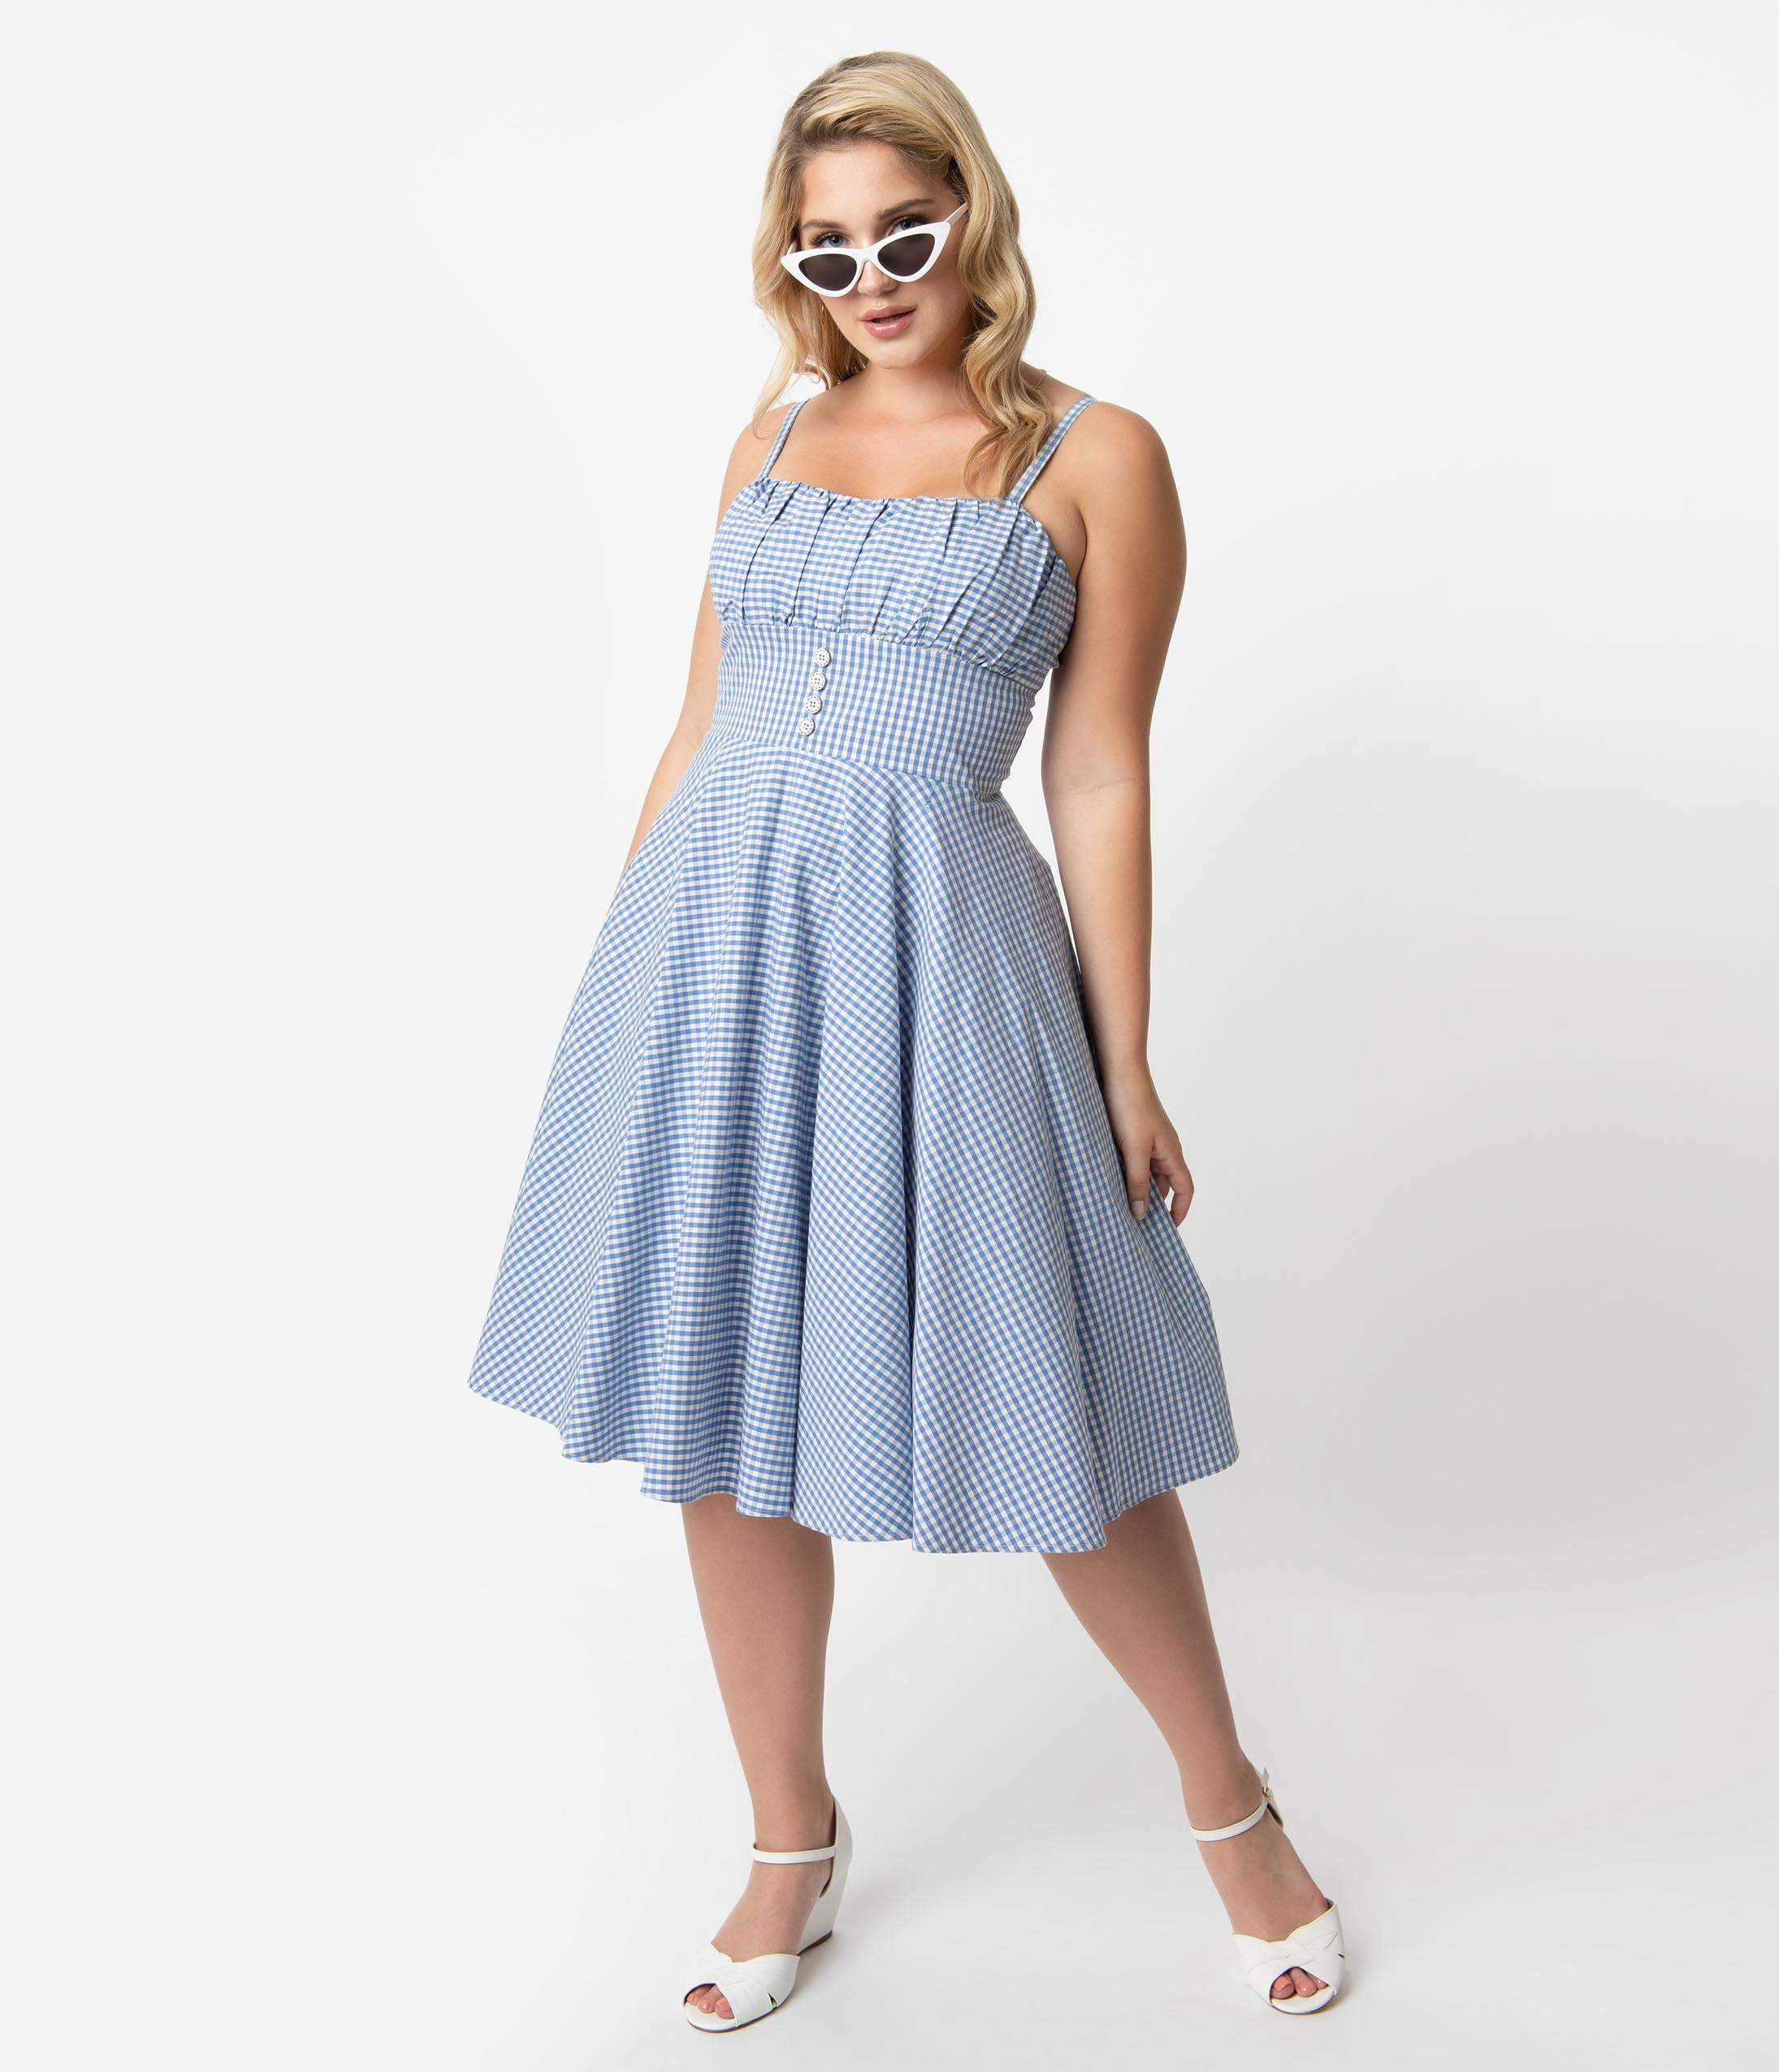 500 Vintage Style Dresses for Sale | Vintage Inspired Dresses Plus Size Retro Style Light Blue  White Gingham Cotton Melissendre Swing Dress $78.00 AT vintagedancer.com